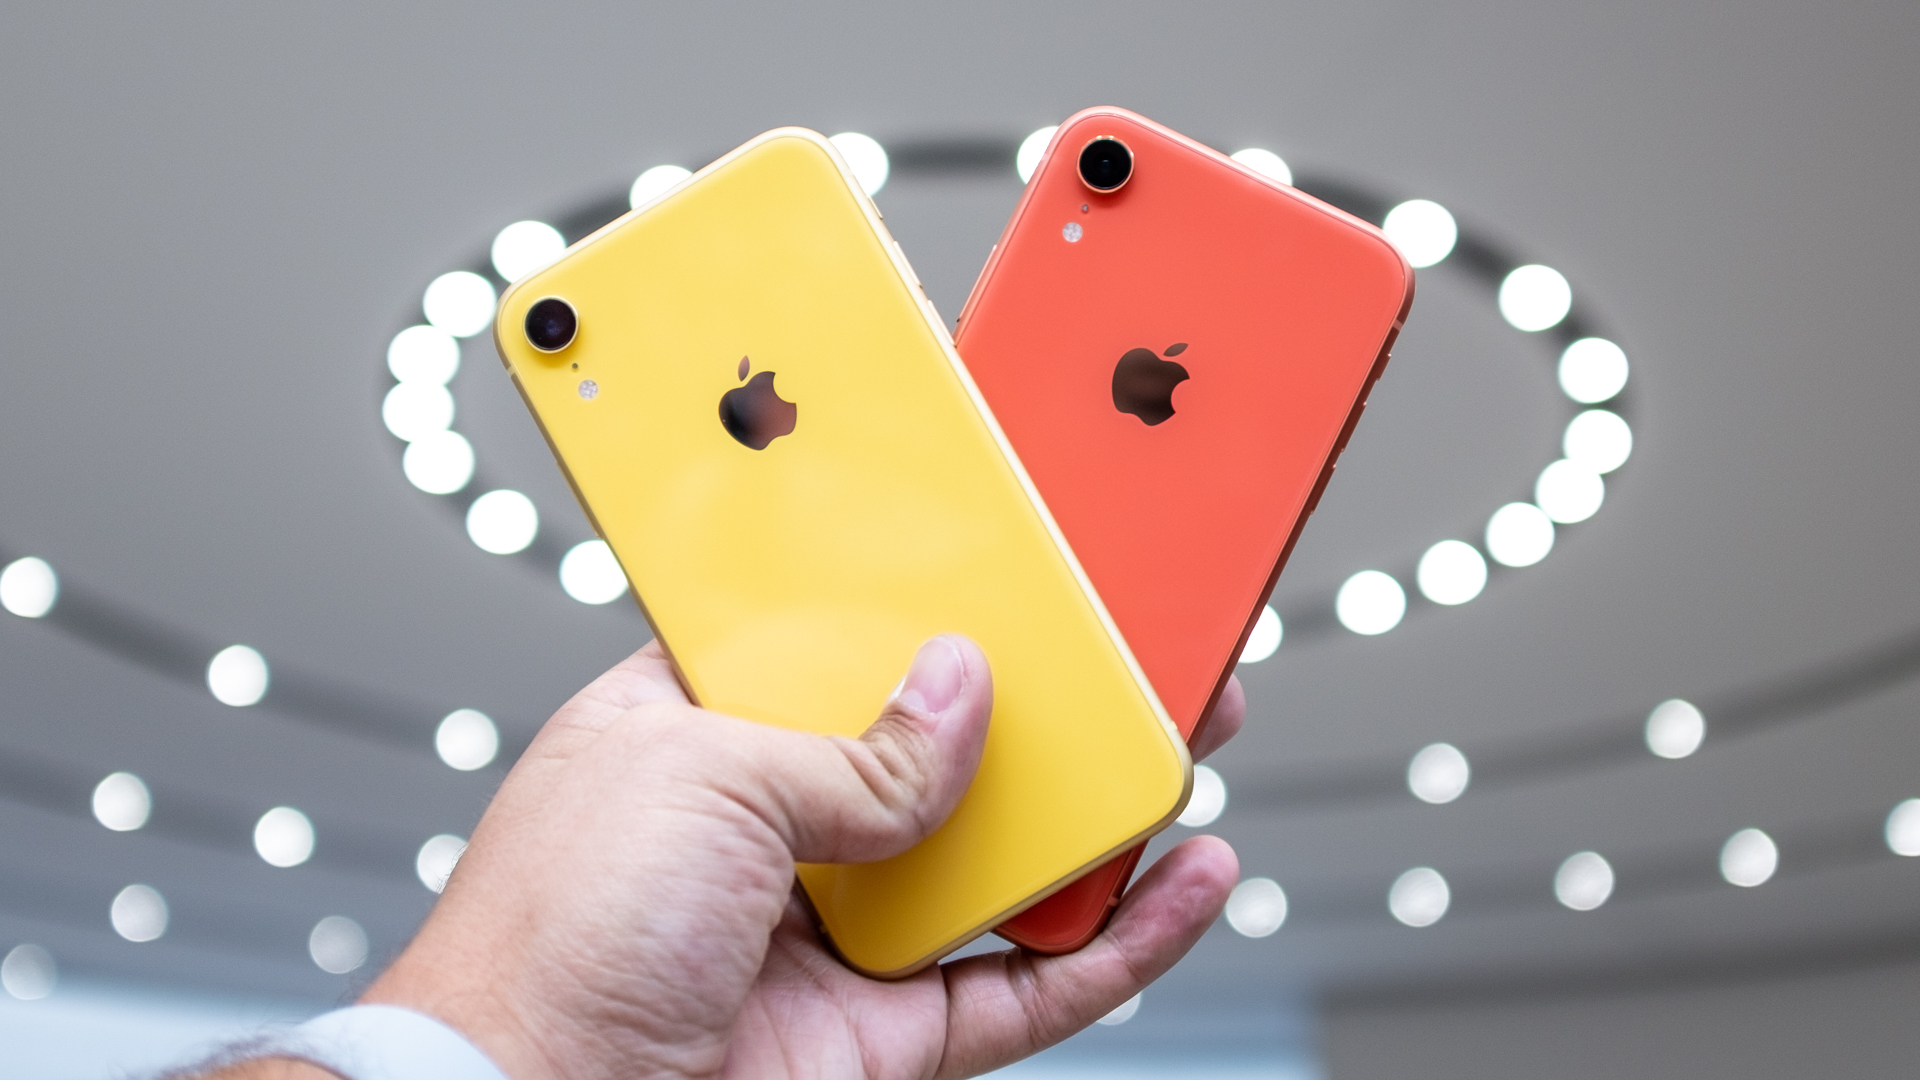 iphone xr coral unboxing and setup